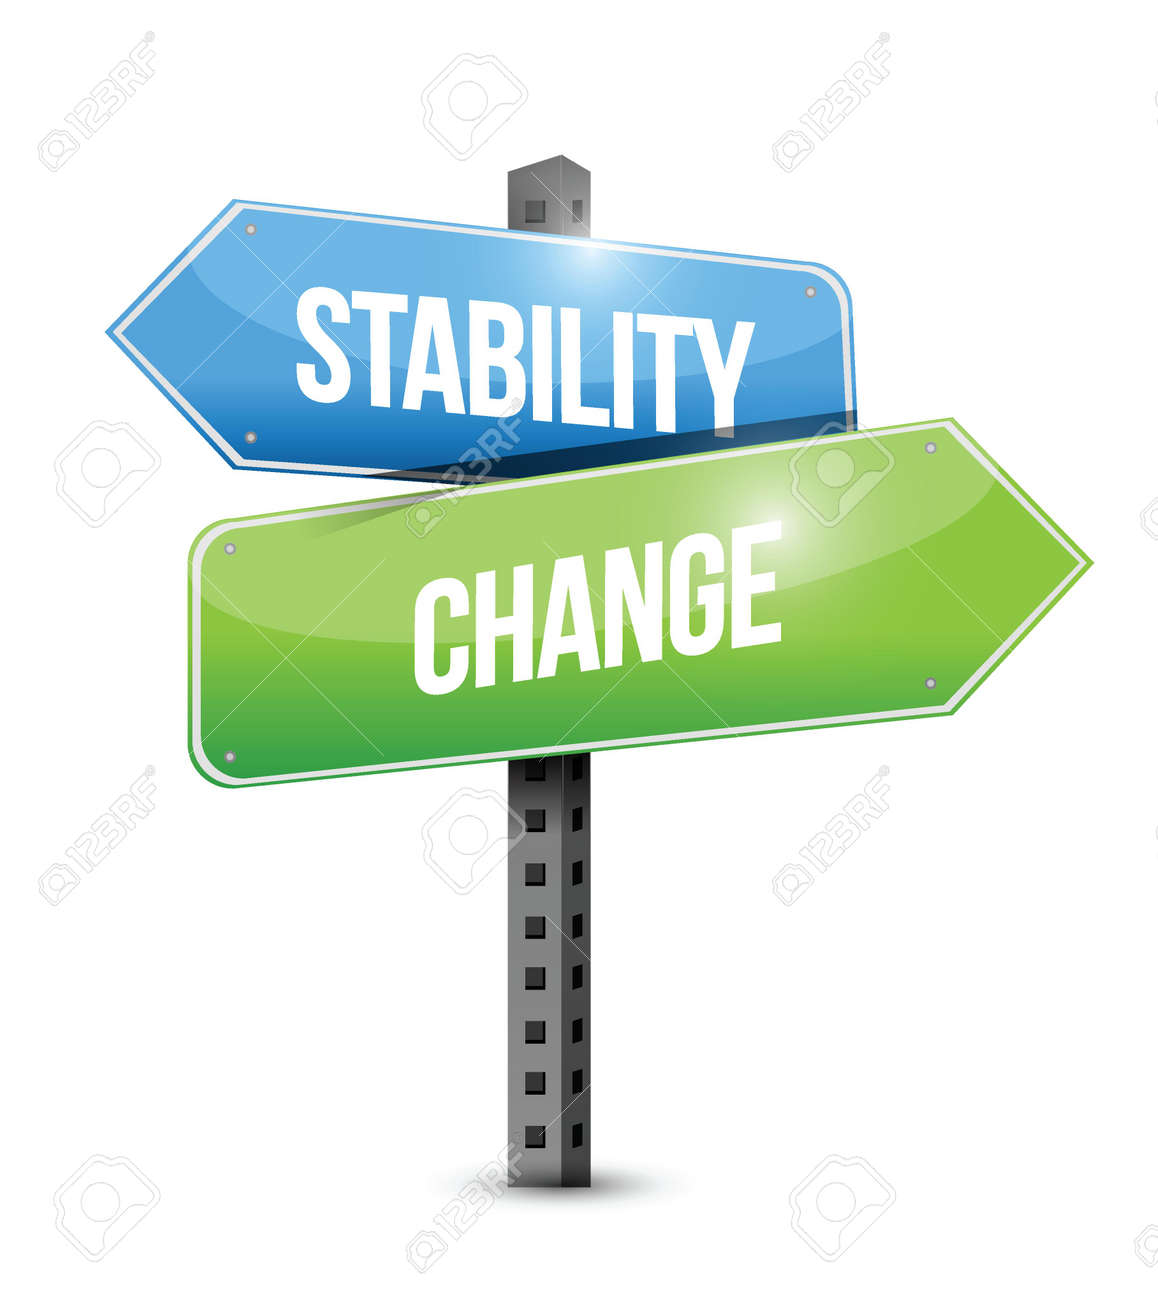 stability and change road sign illustration design over a white background - 23057828